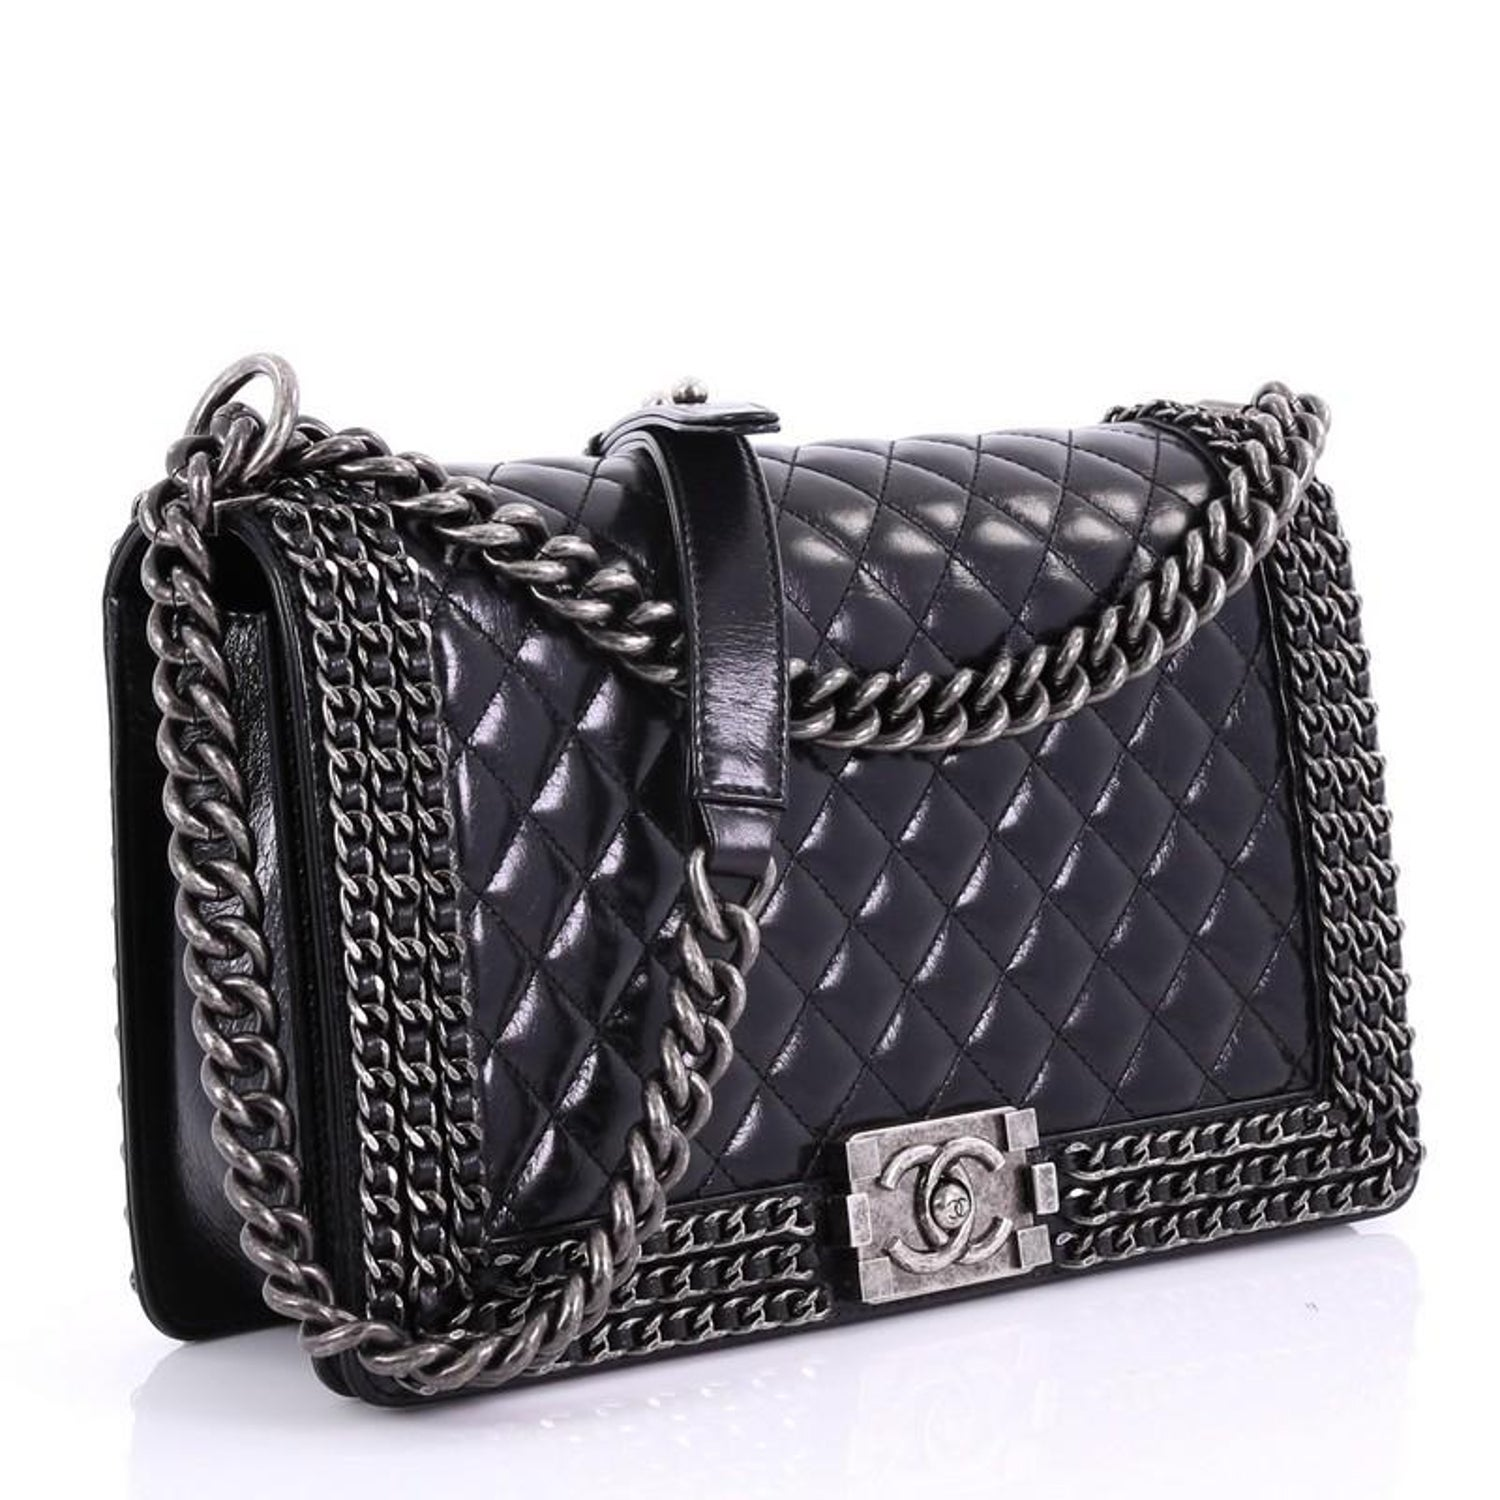 f976879c3bca Chanel Chained Boy Flap Bag Quilted Glazed Calfskin New Medium at 1stdibs